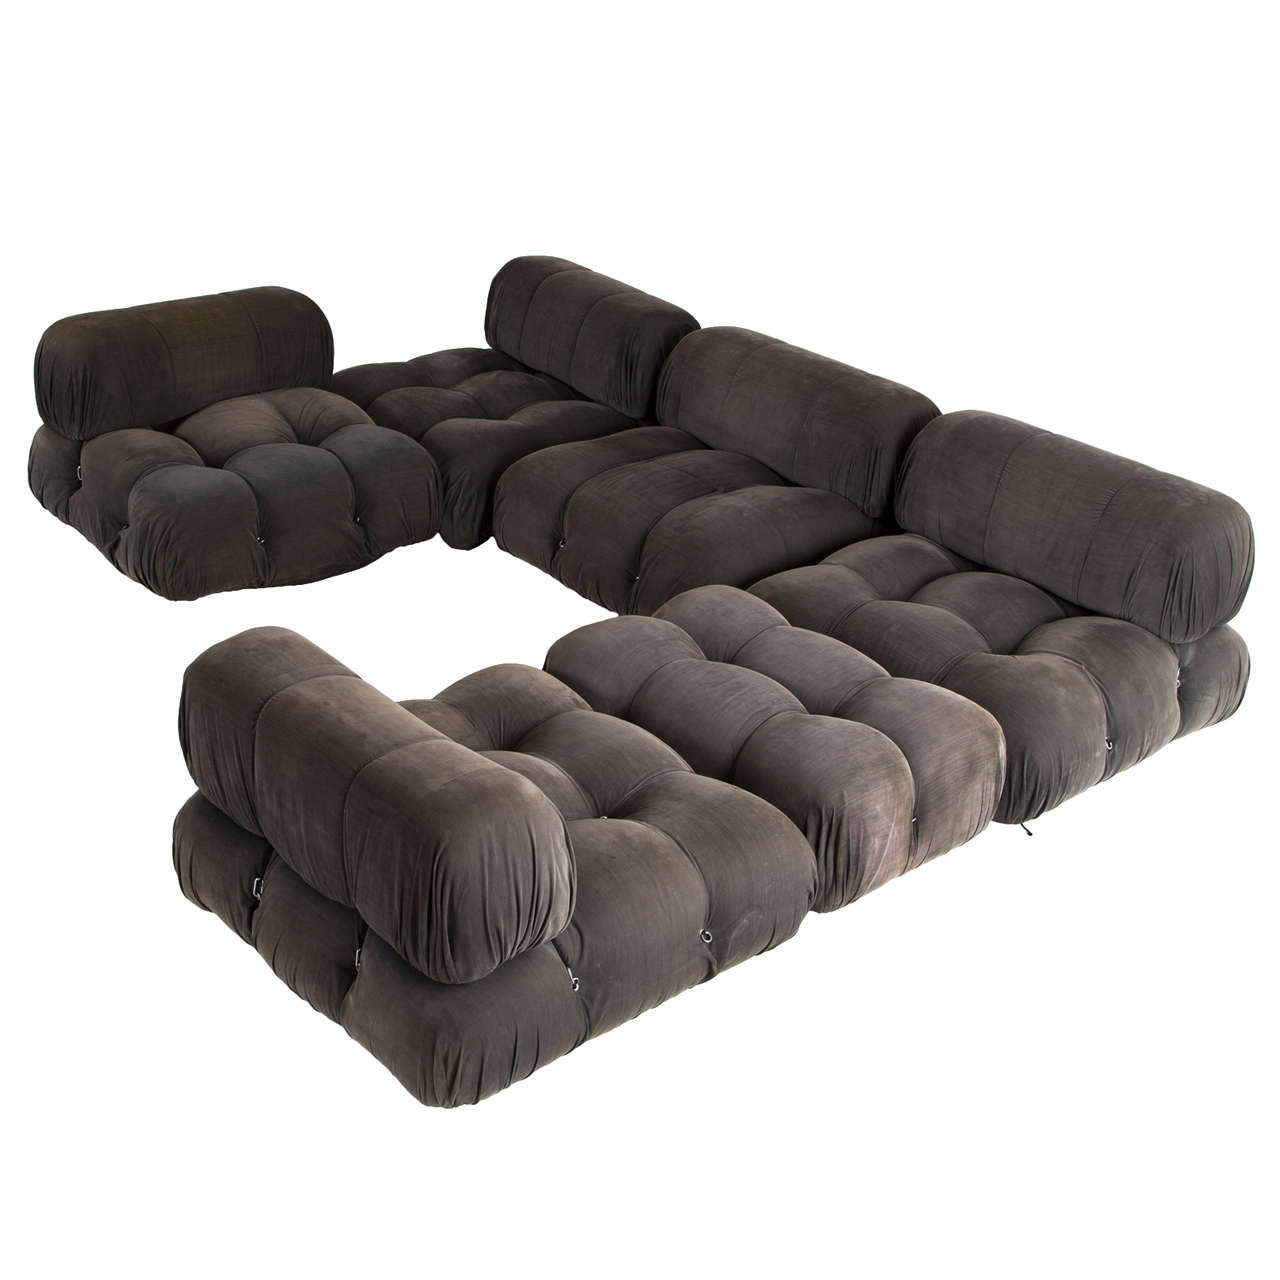 Modular Furniture Sofa: 'Camaleonda' Modular Sofa By Mario Bellini At 1stdibs